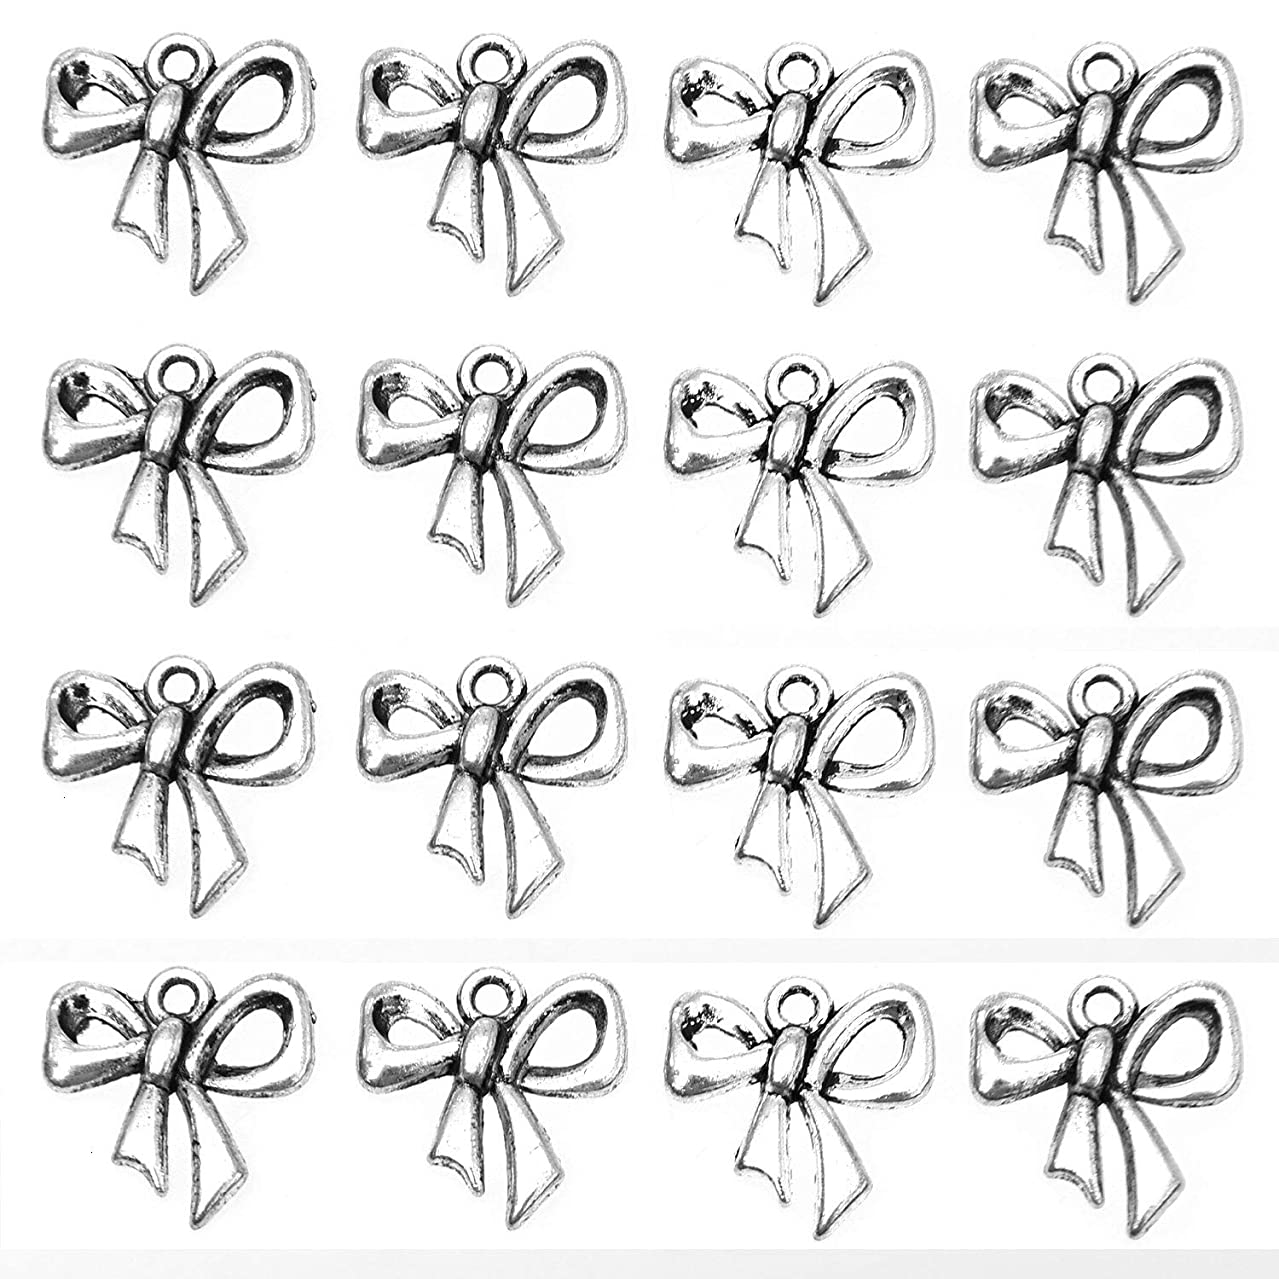 Monrocco 100 Pcs Antique Silver Metal Alloy Bow Charms Bowtie Charms Pendant Bulk for Crafts Bracelets Jewelry Making